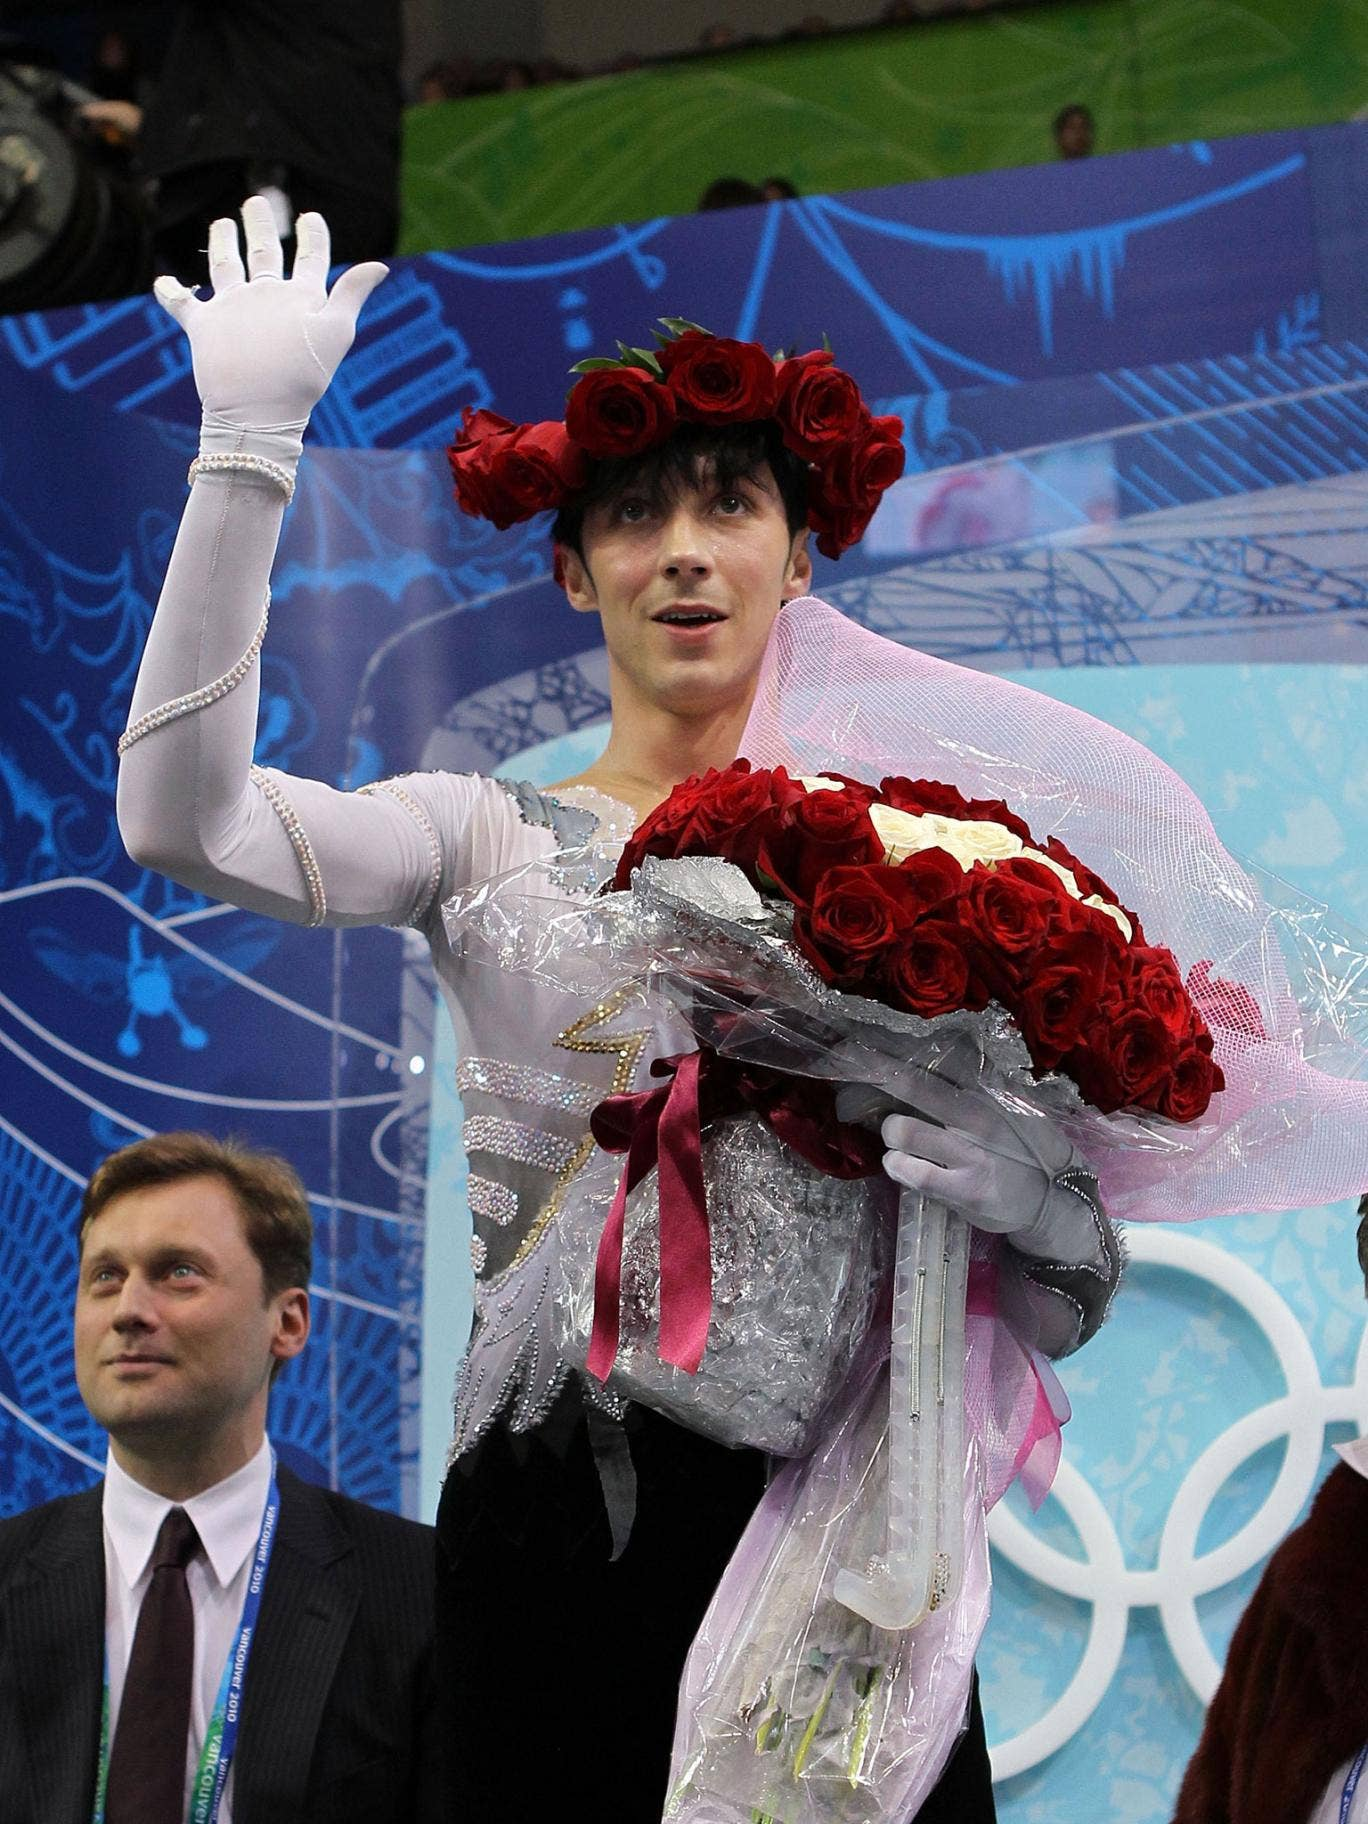 The US skater Johnny Weir will be as flamboyant in Sochi as he was in Vancouver